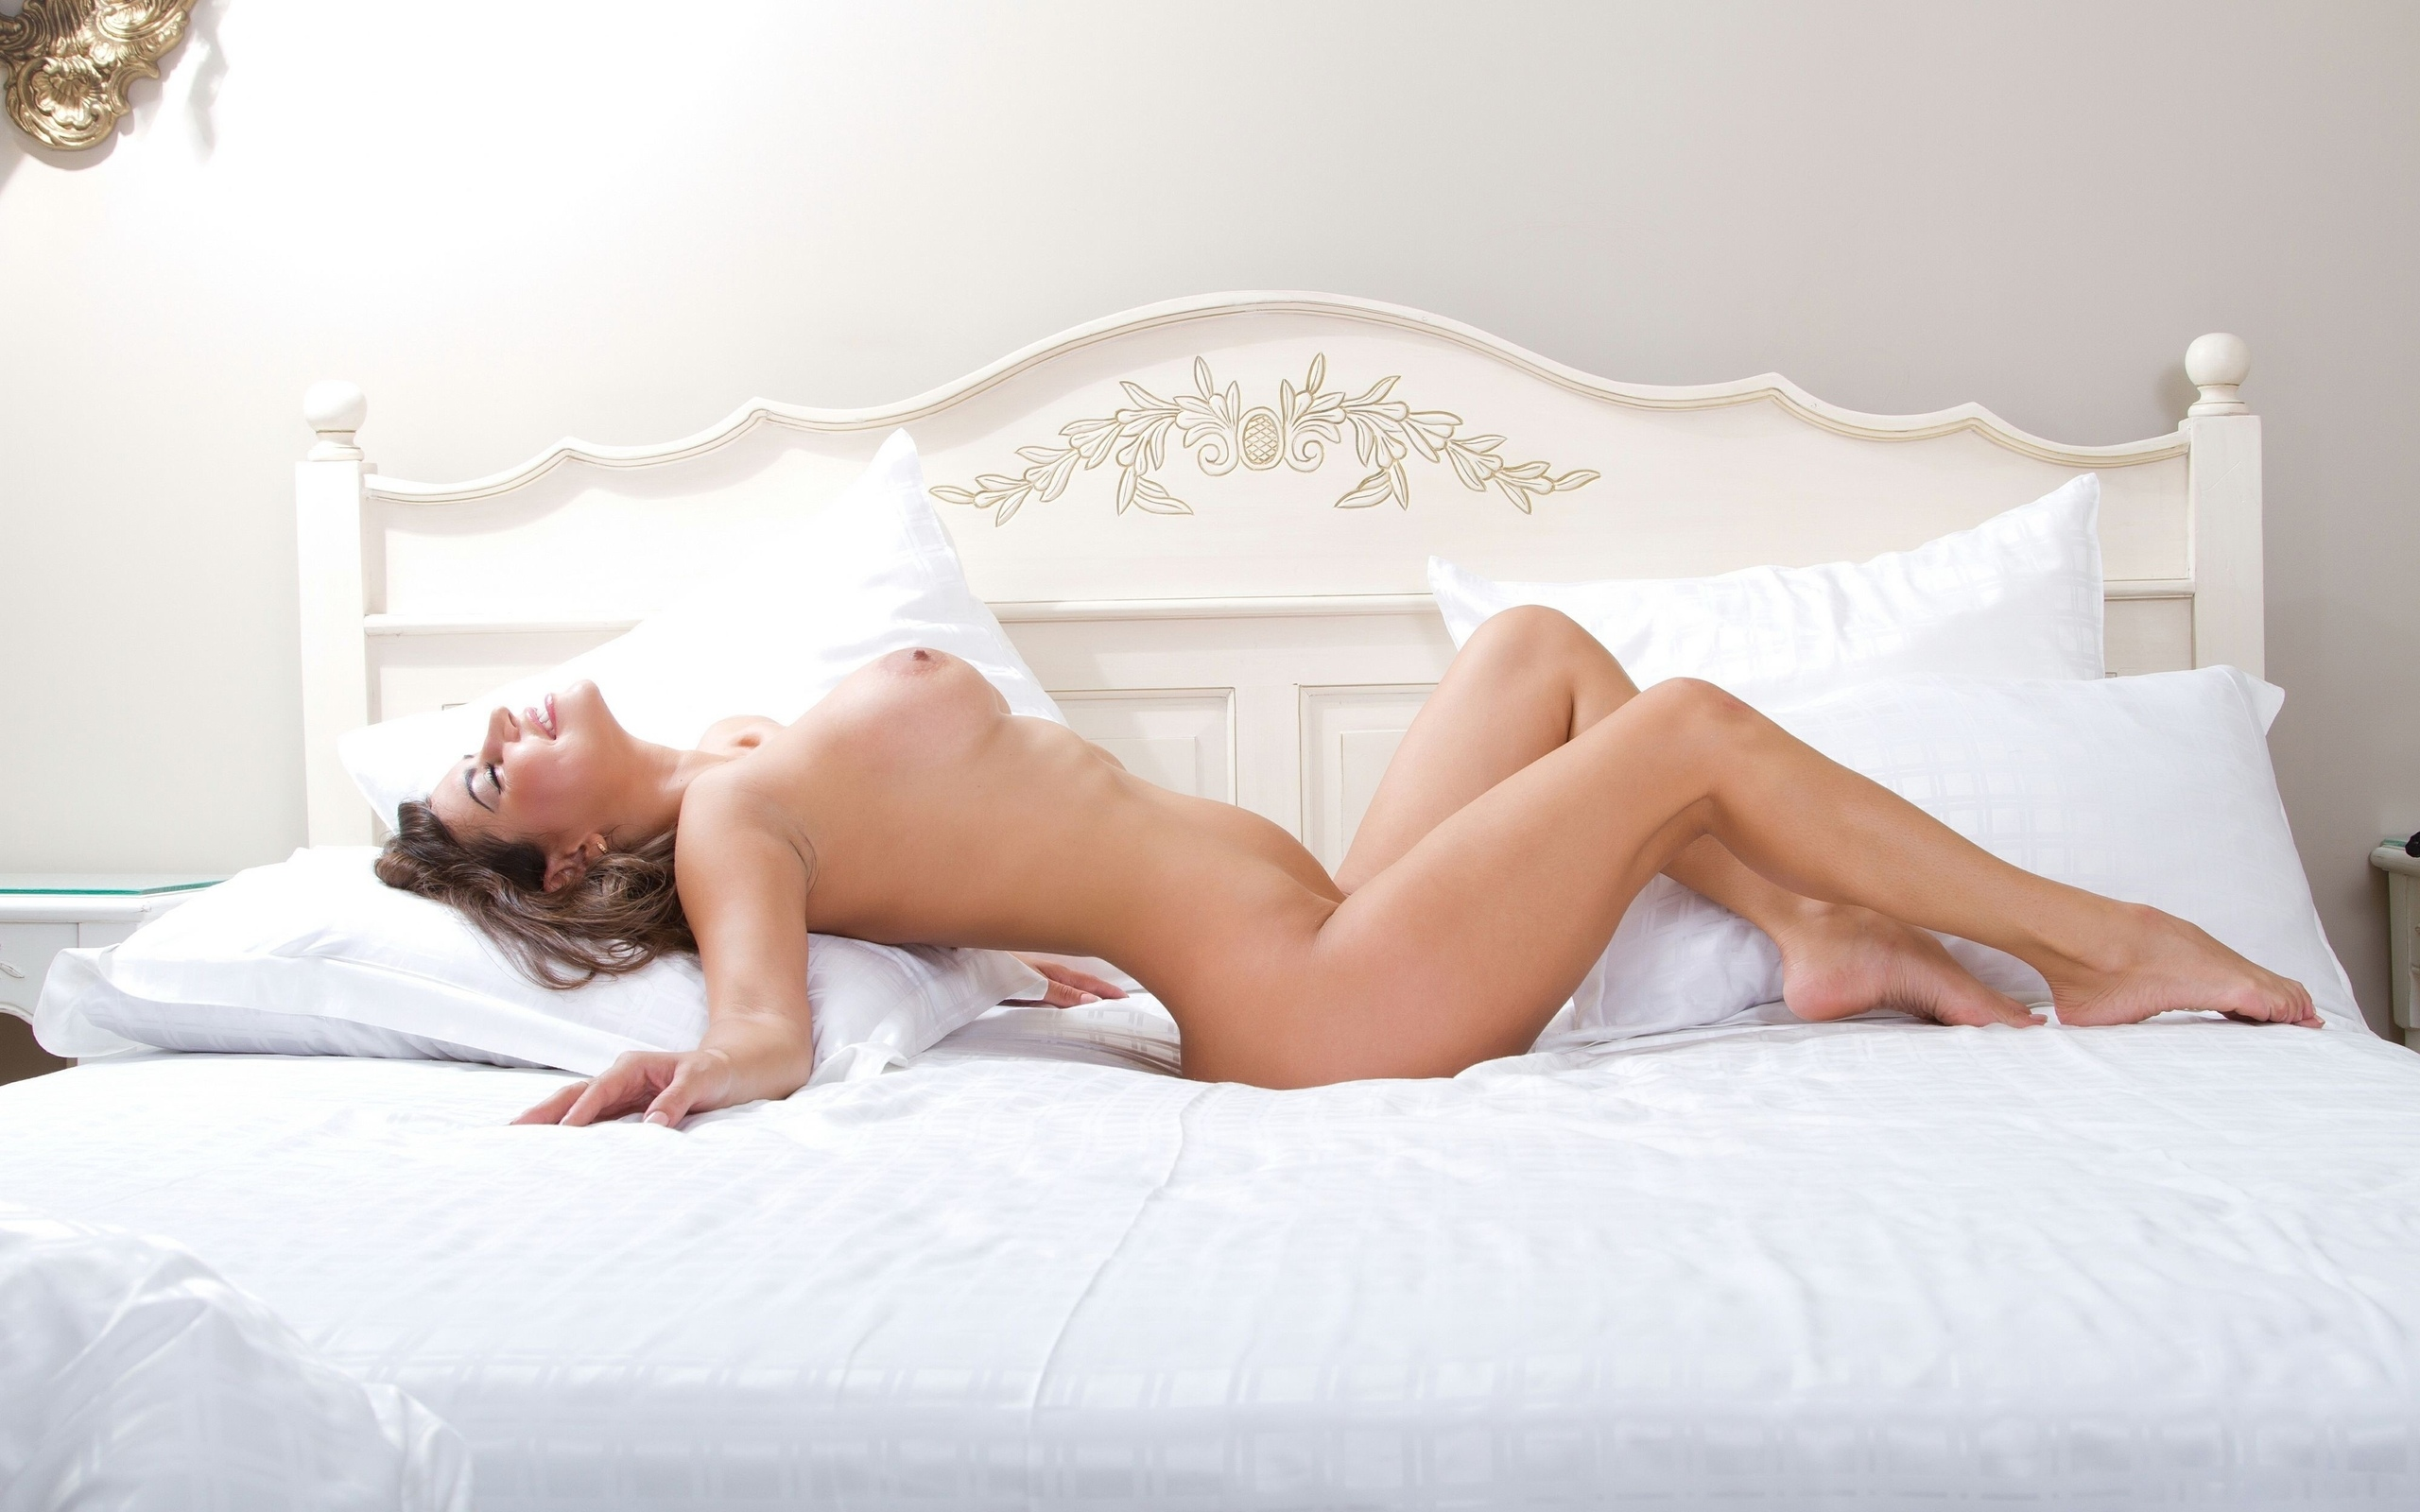 naked-gallery-sex-girl-bed-nude-gifs-edison